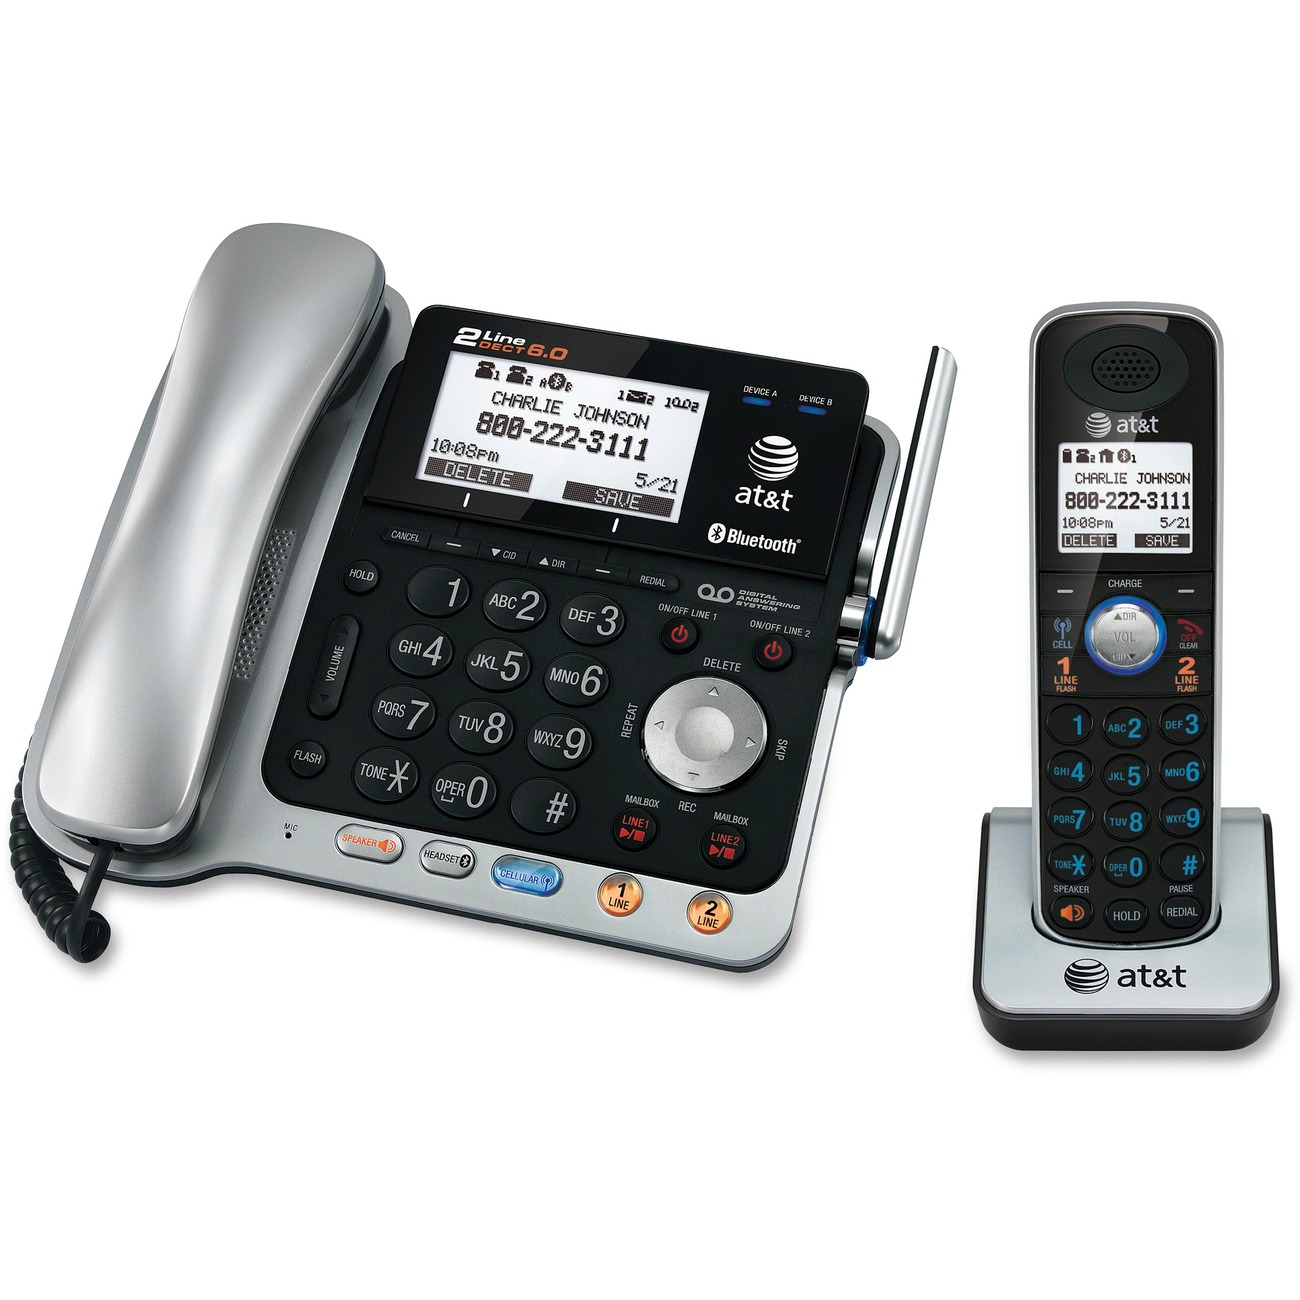 West Coast Office Supplies :: Technology :: Telephone